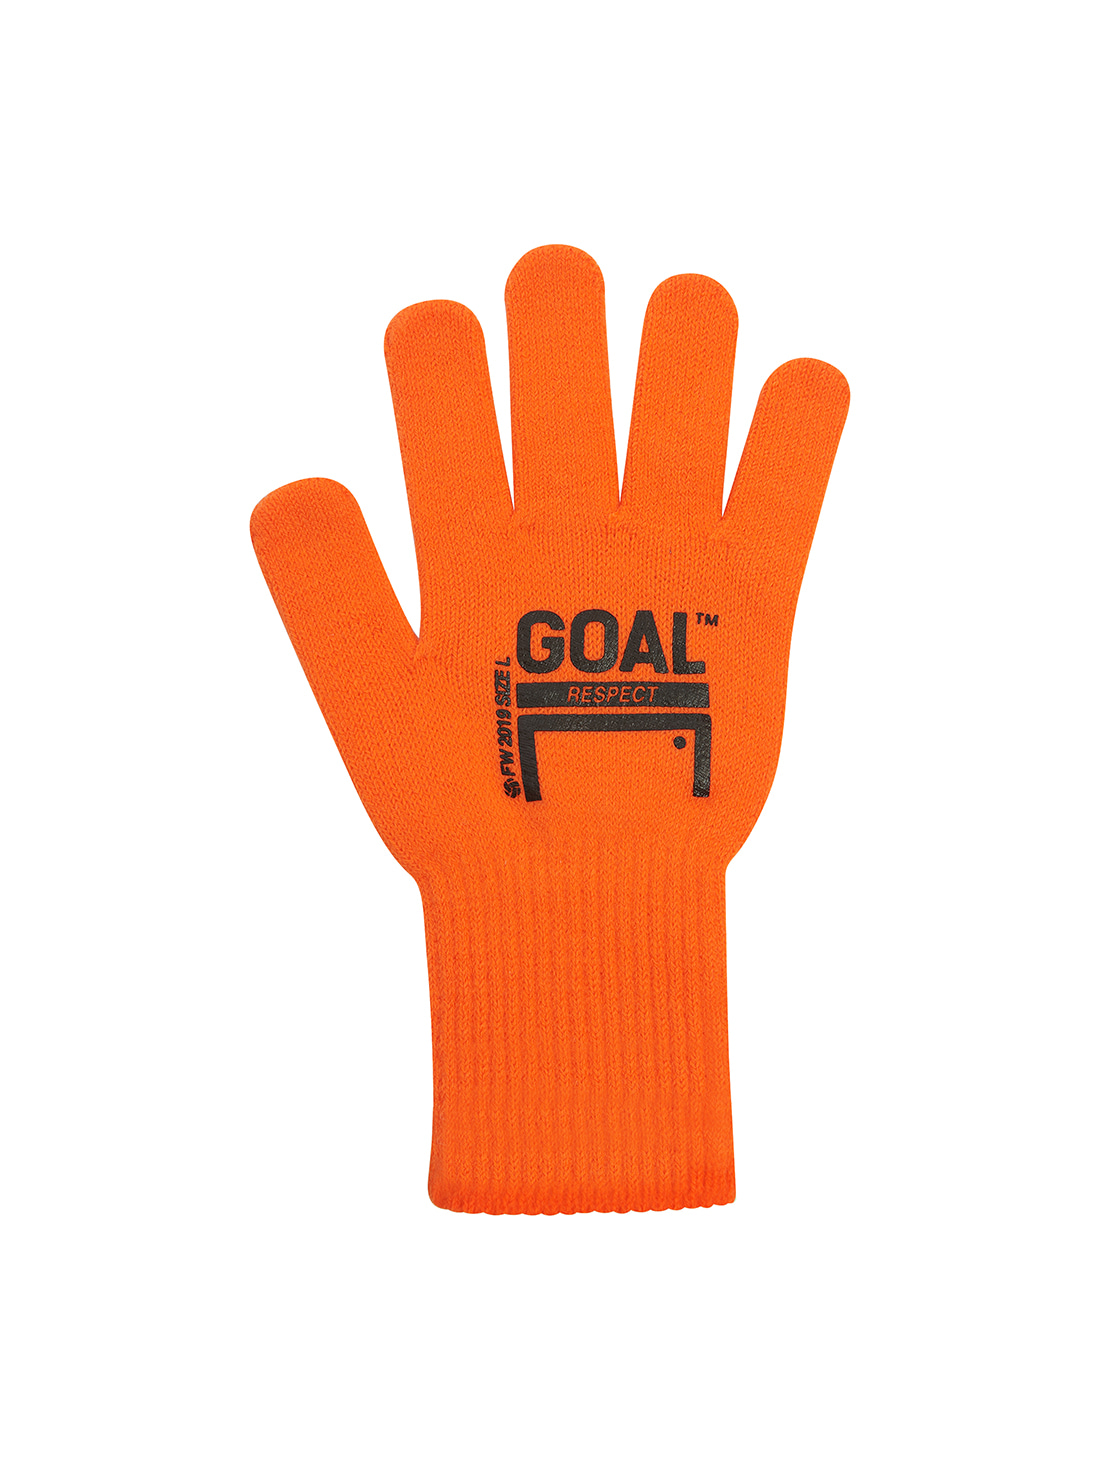 GOALSTUDIO GOAL GLOVE - ORANGE